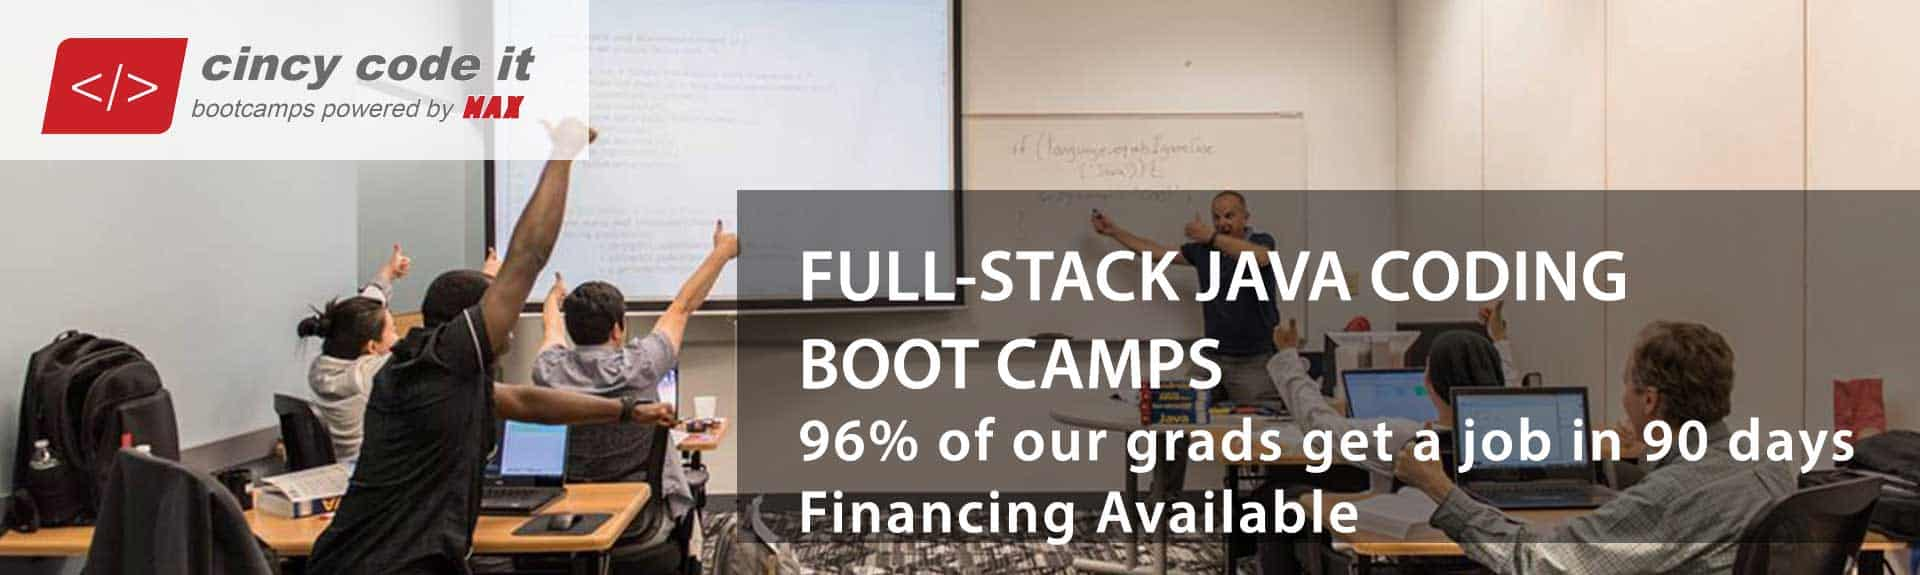 Java Code Camp; Java Coding Bootcamp - Cincy Code IT, MAX Technical Training